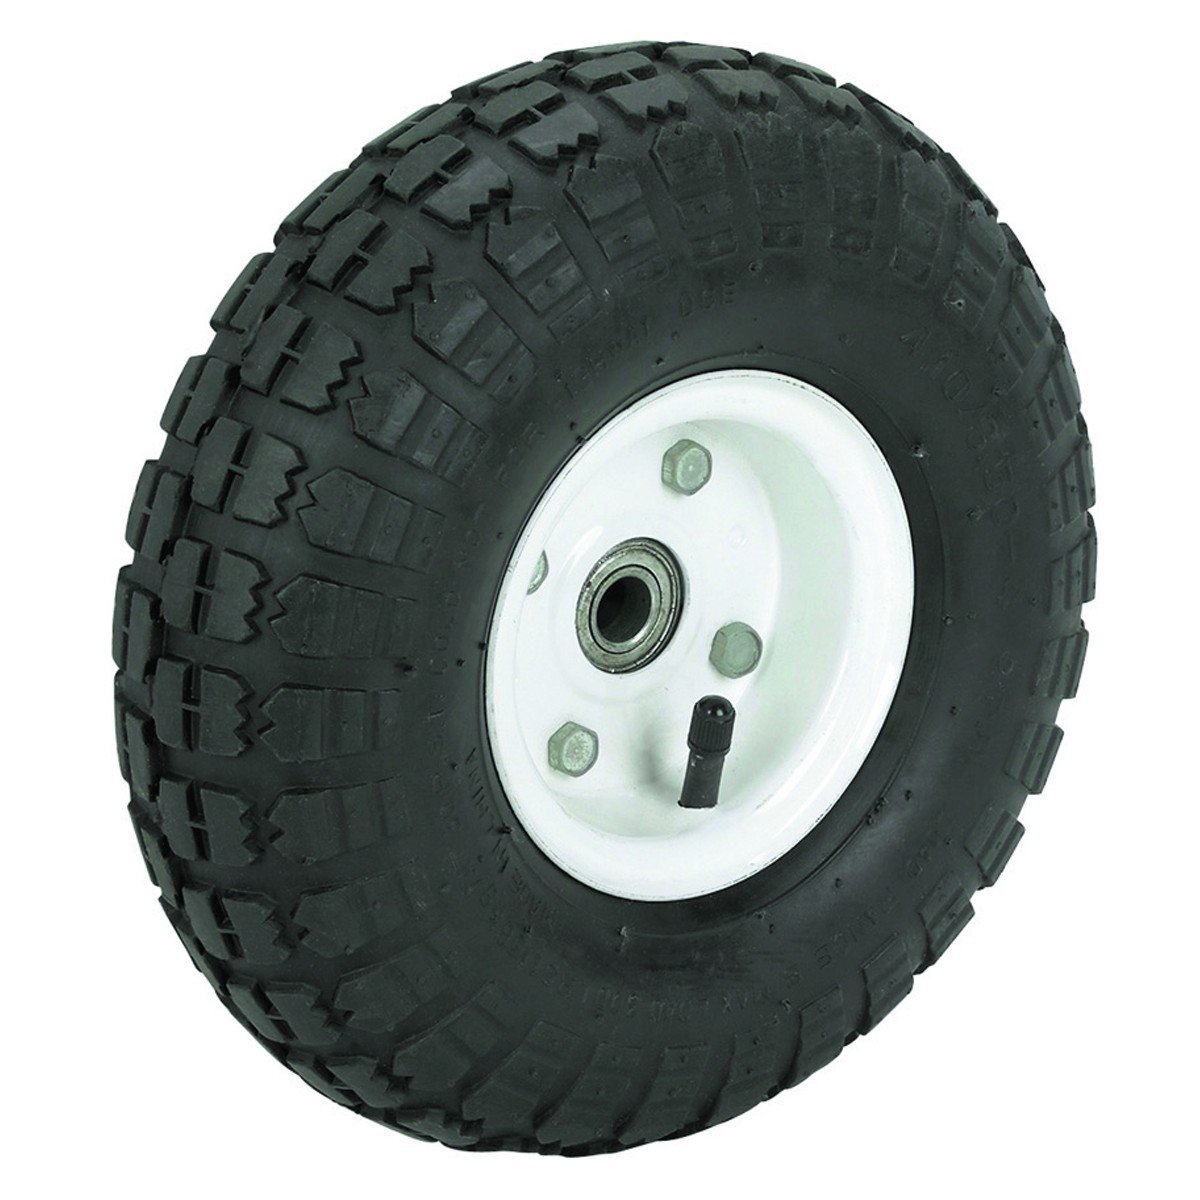 10 in. Pneumatic Tire with White Hub HFJ14